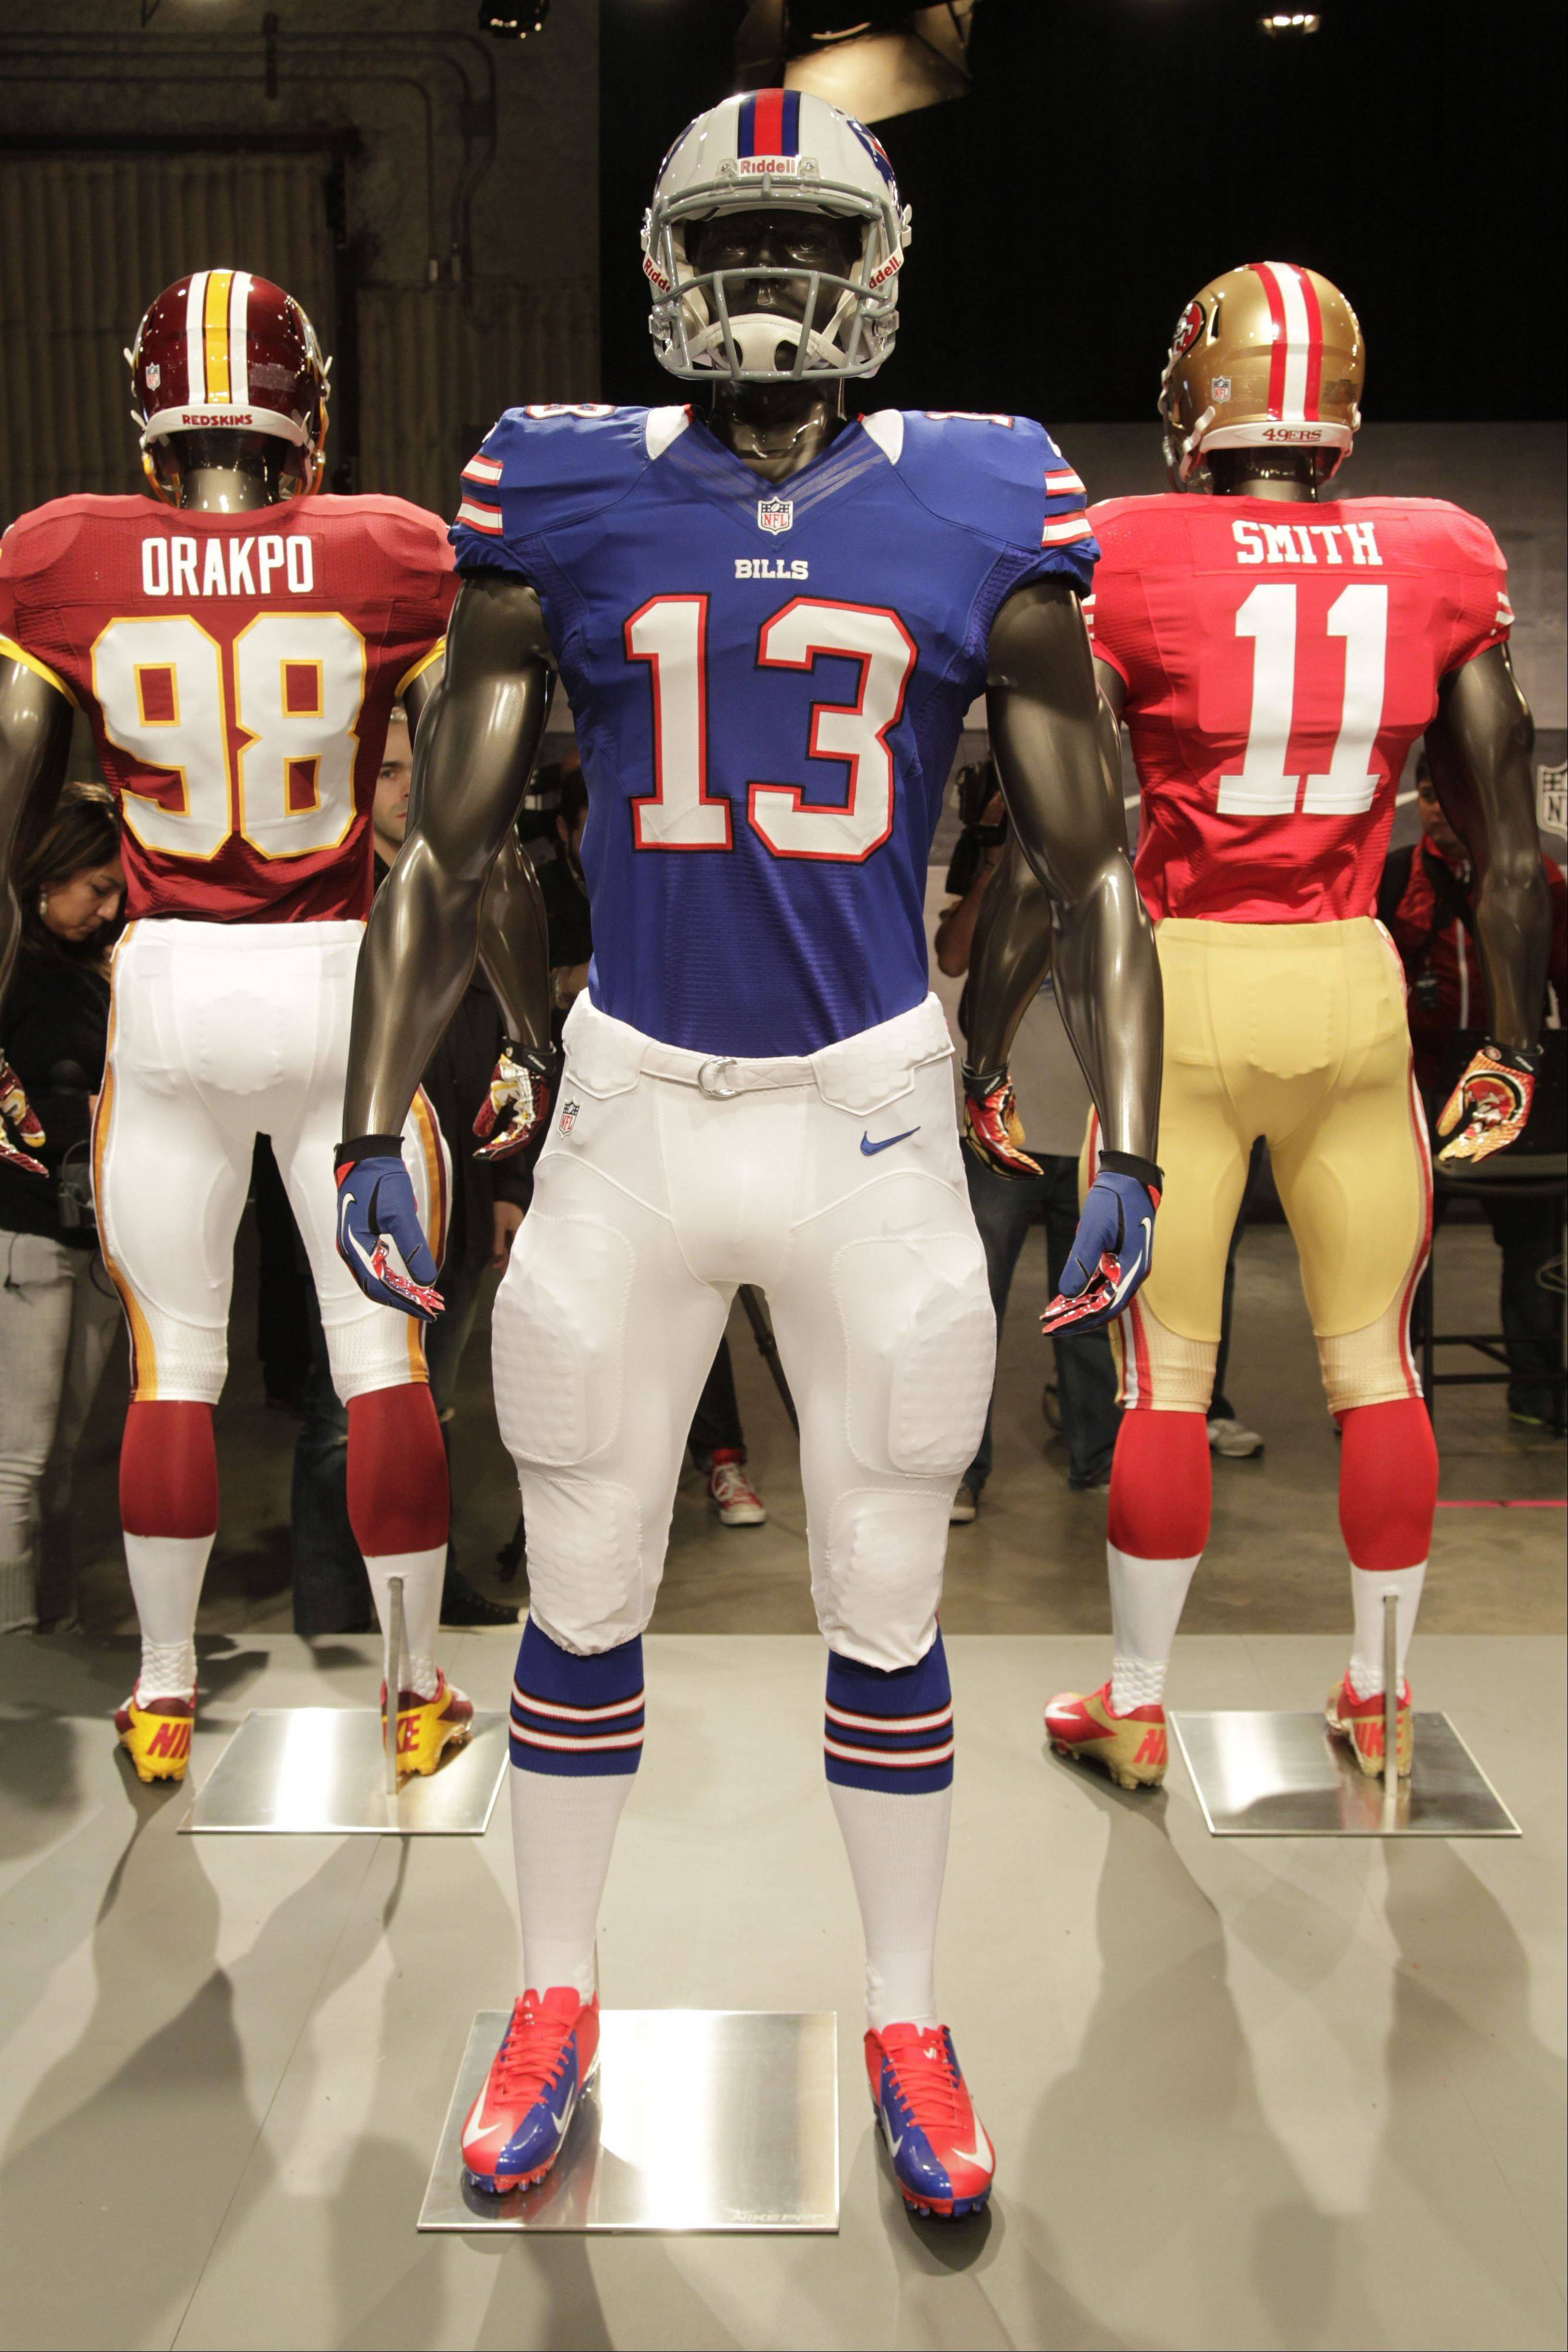 The new Buffalo Bills uniform is displayed on a mannequin in New York, Tuesday, April 3, 2012. NFL has unveiled its new sleek uniforms designed by Nike. While most of the new uniforms are not very different visually, they all are made with new technology that make them lighter, dryer and more comfortable.